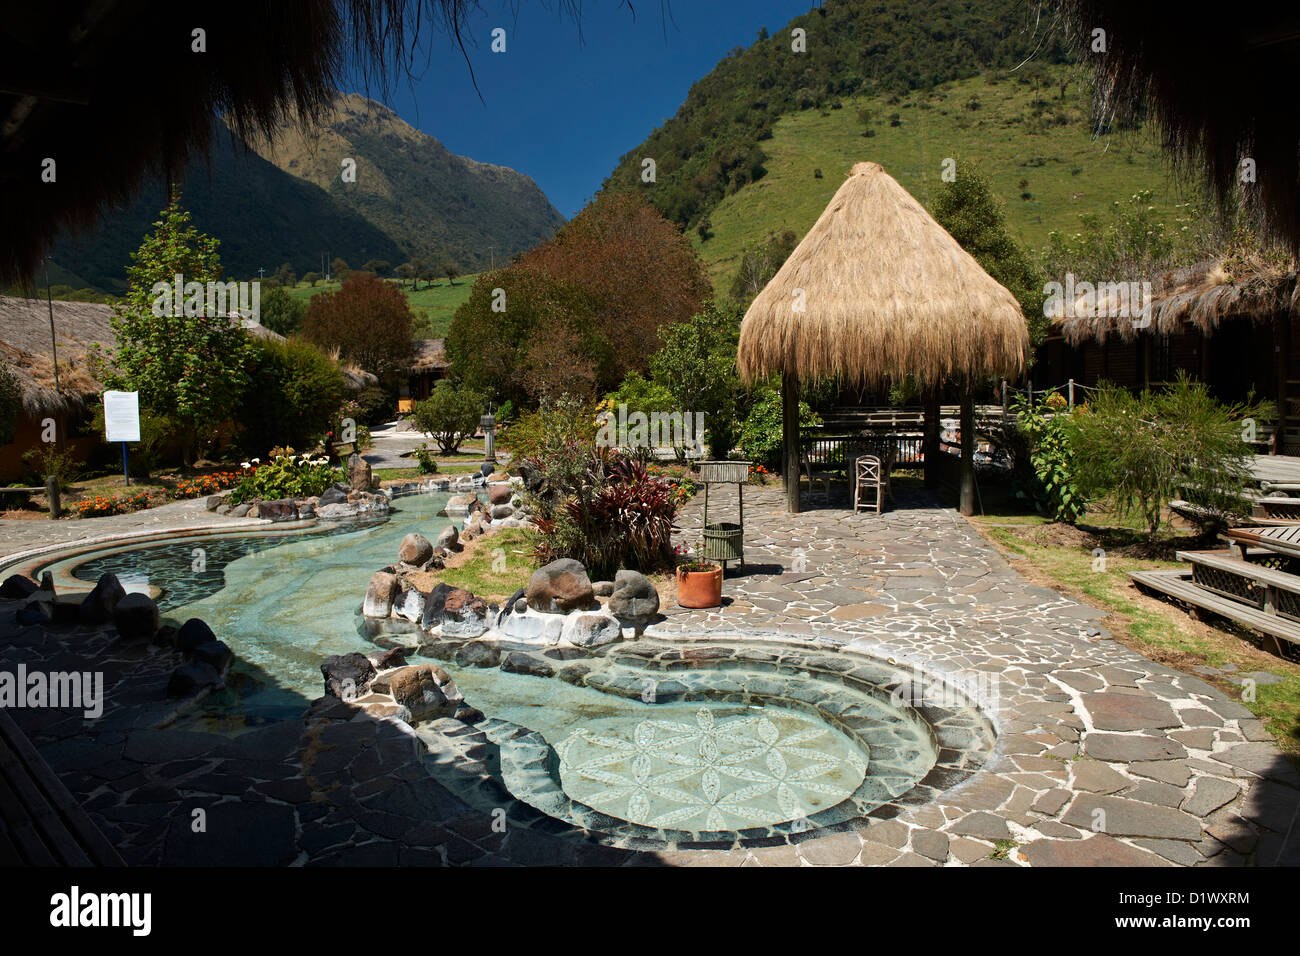 bath with hot springs in hotel of Papallacta, Andes, Ecuador Stock Photo